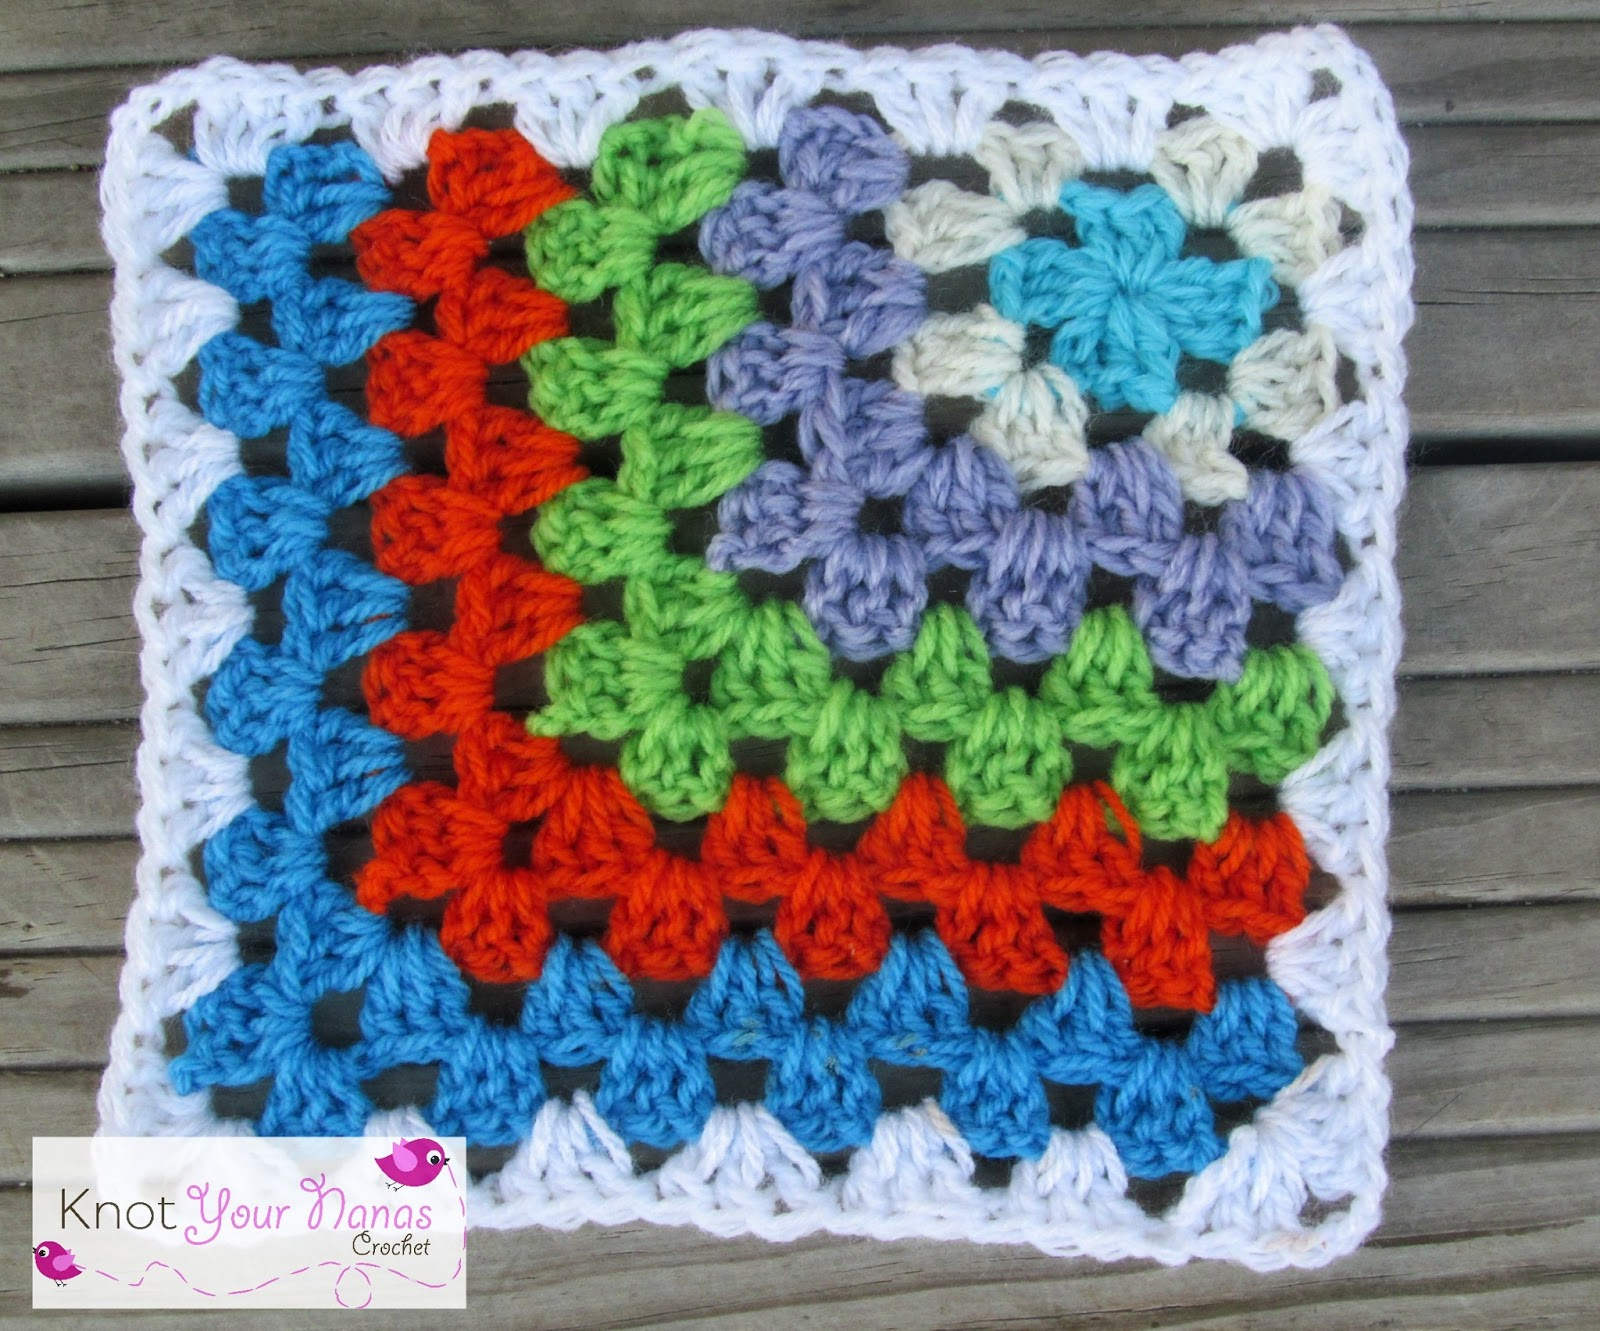 Knot Your Nanas Crochet: Granny Square Crochet Along Revisited (Week ...